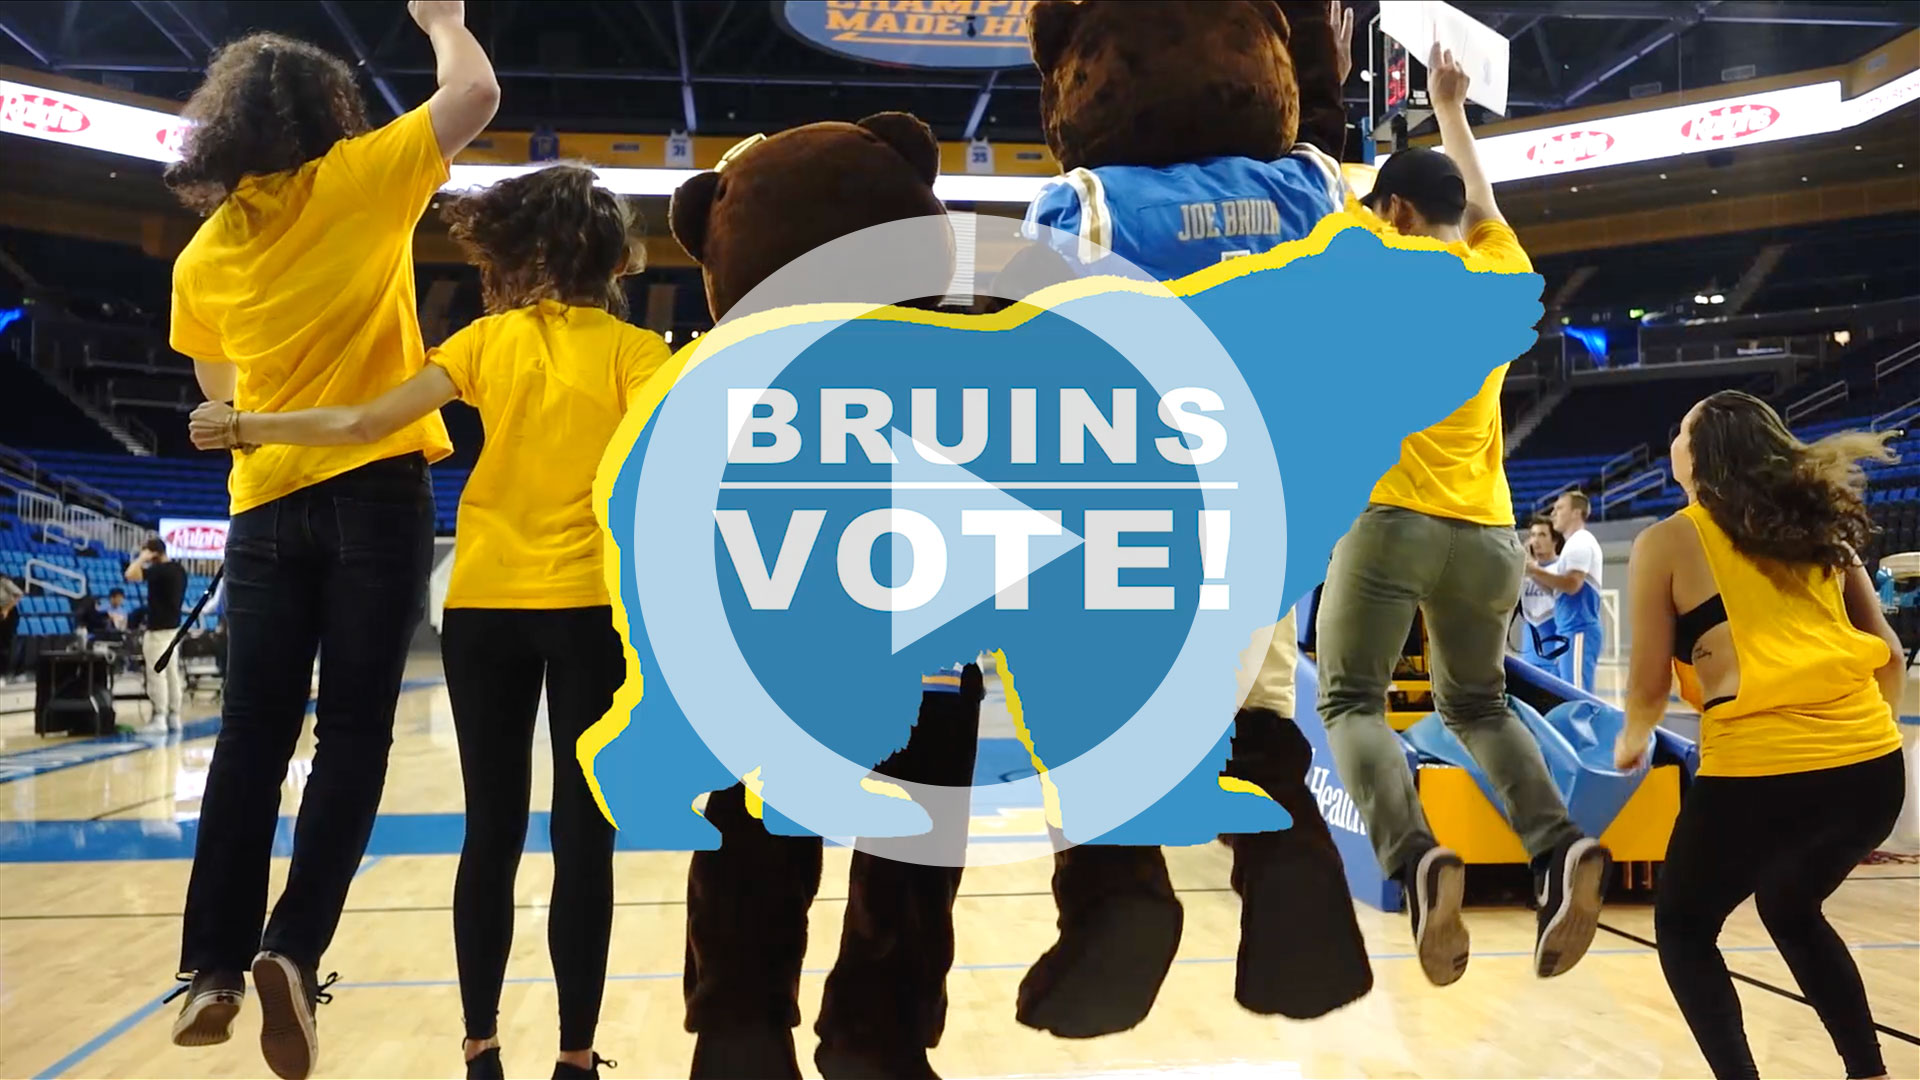 Bruins Vote Video